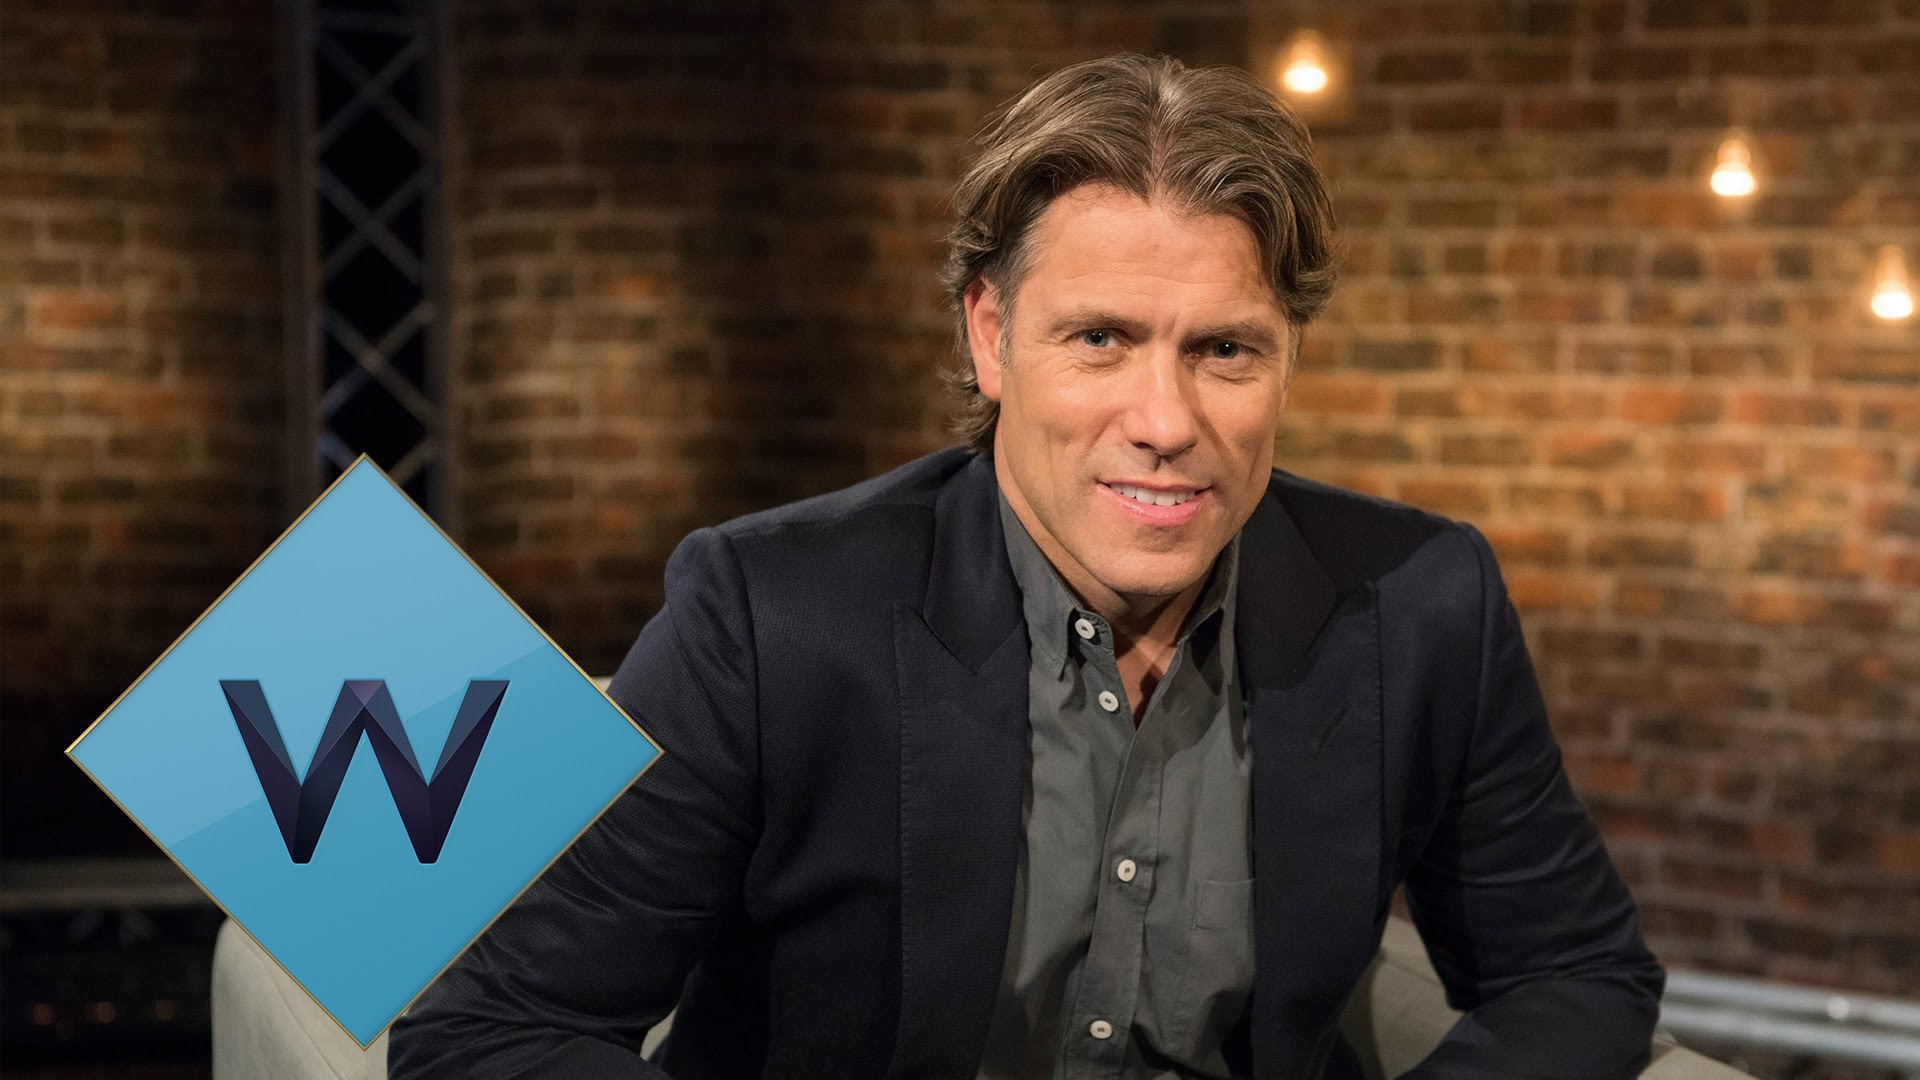 John Bishop In Conversation With... (Series 1-4)   W - UKTV / Lola Entertainment   Comedian John Bishop swaps the mic for the interview chair in this UKTV original series on W. The series showcases John's unique approach to interviewing as he gets his high profile guests to open up and talk candidly about their lives and careers. The intimate and insightful chats reveal the person behind the public persona, giving us one of the freshest and most revealing chat shows on British television.